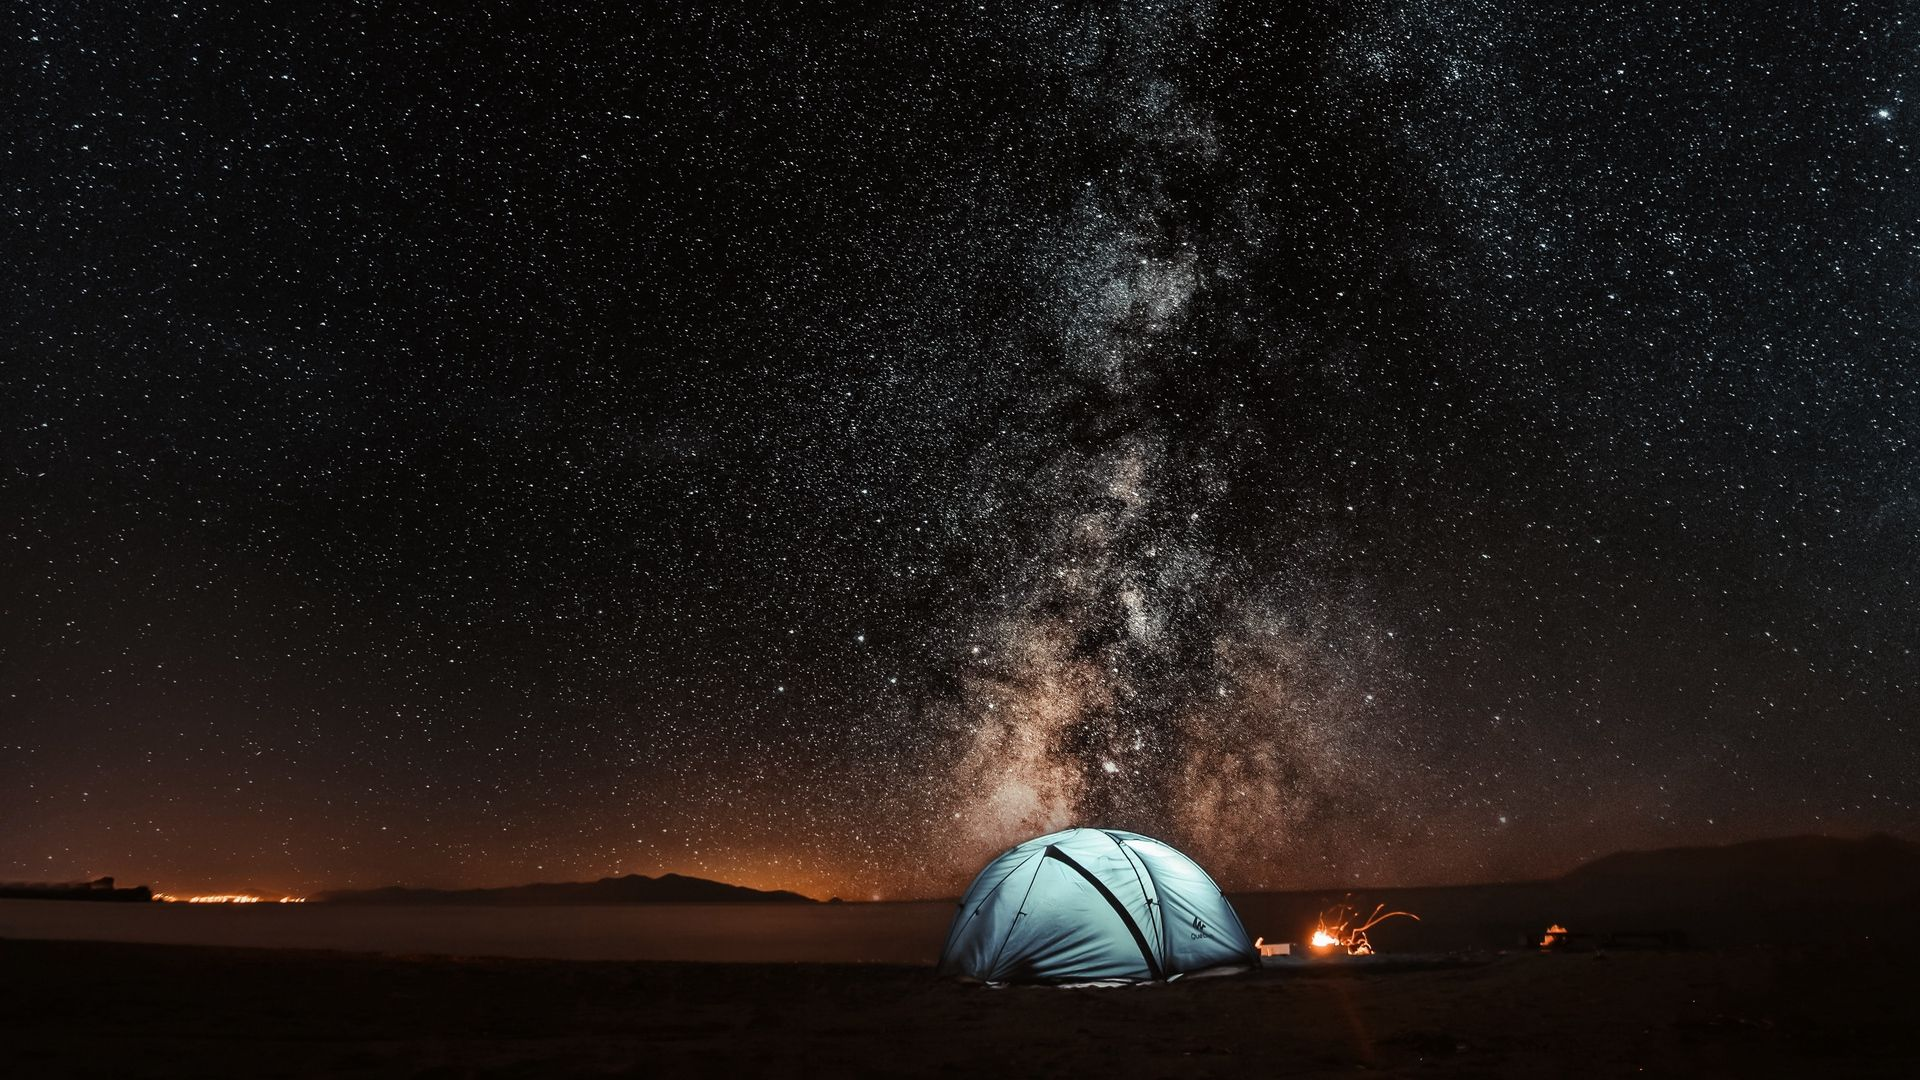 Download Wallpaper 1920x1080 Tent Starry Sky Night Tourism Full